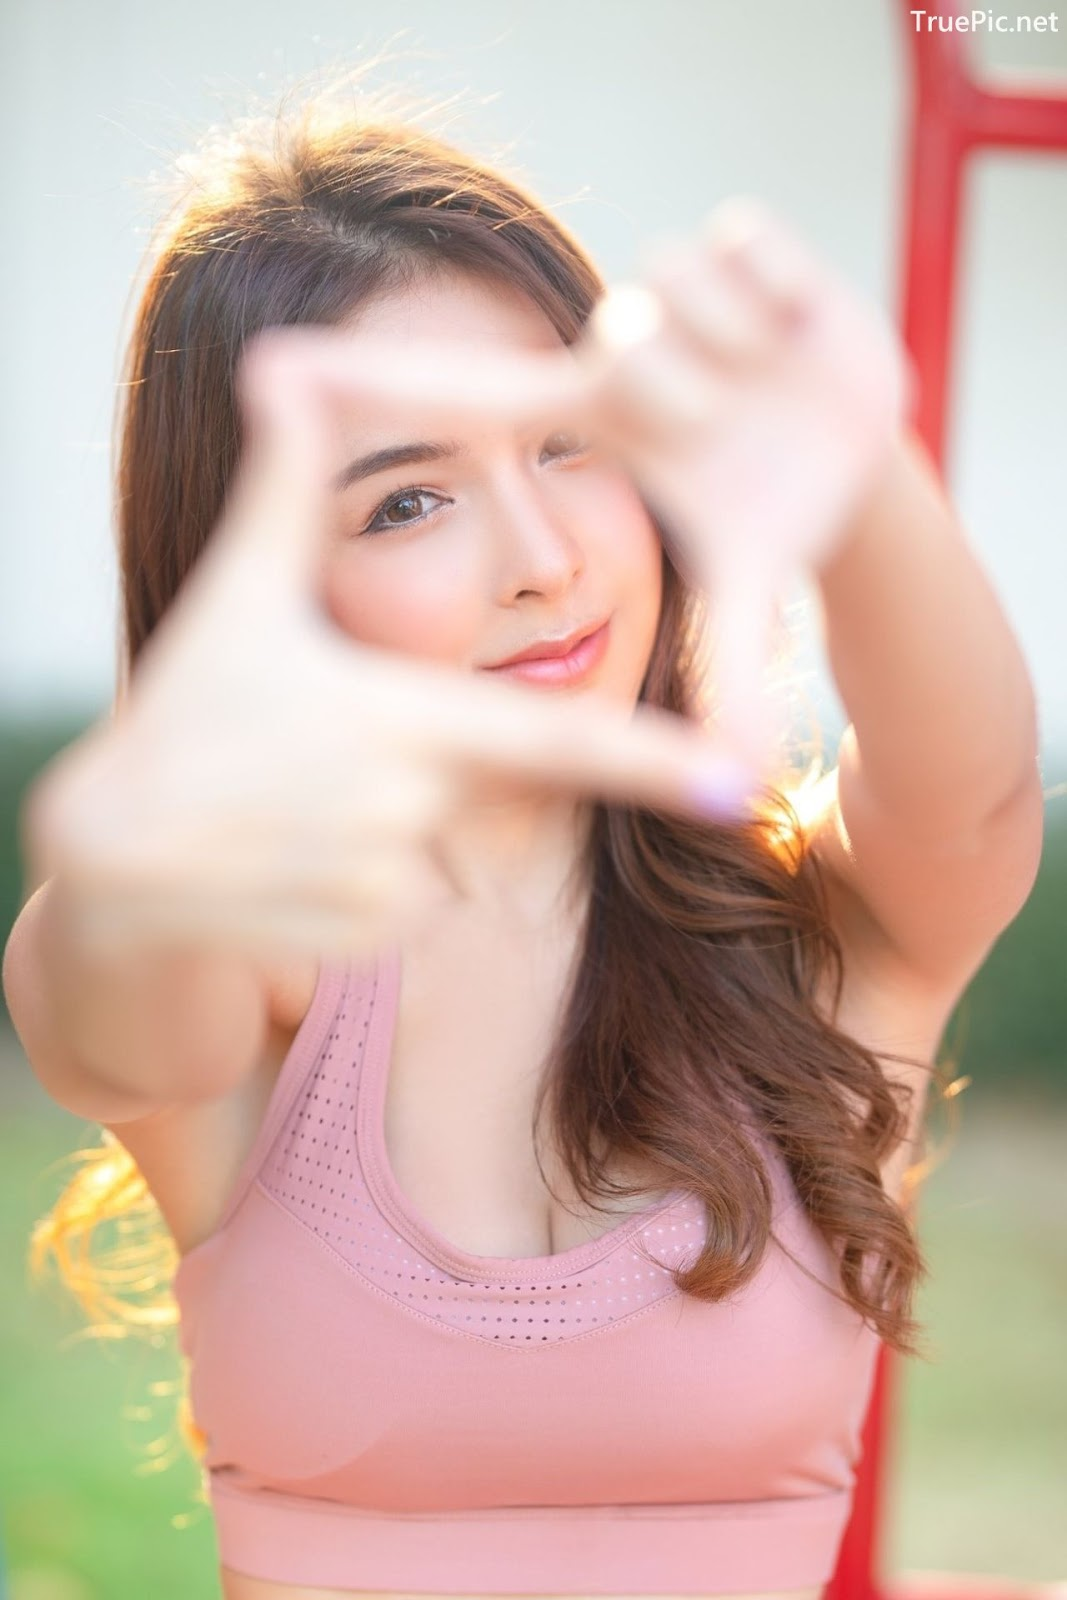 Image-Thailand-Beautiful-Model-Soithip-Palwongpaisal-Pink-Fitness-Girl-TruePic.net- Picture-5